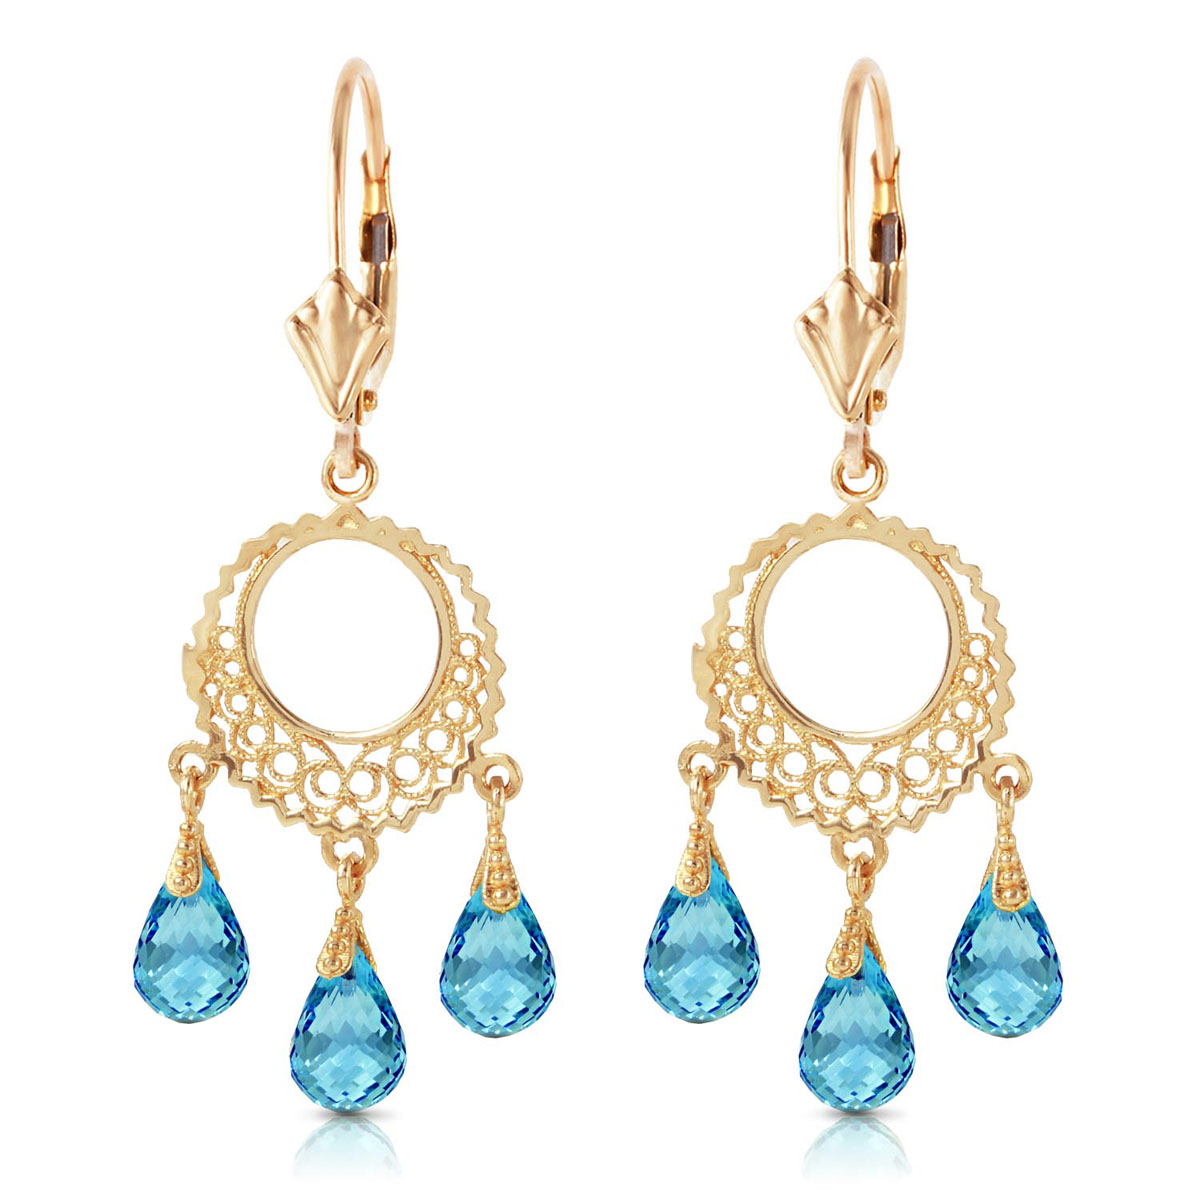 Blue Topaz Trilogy Drop Earrings 3.75 ctw in 9ct Gold